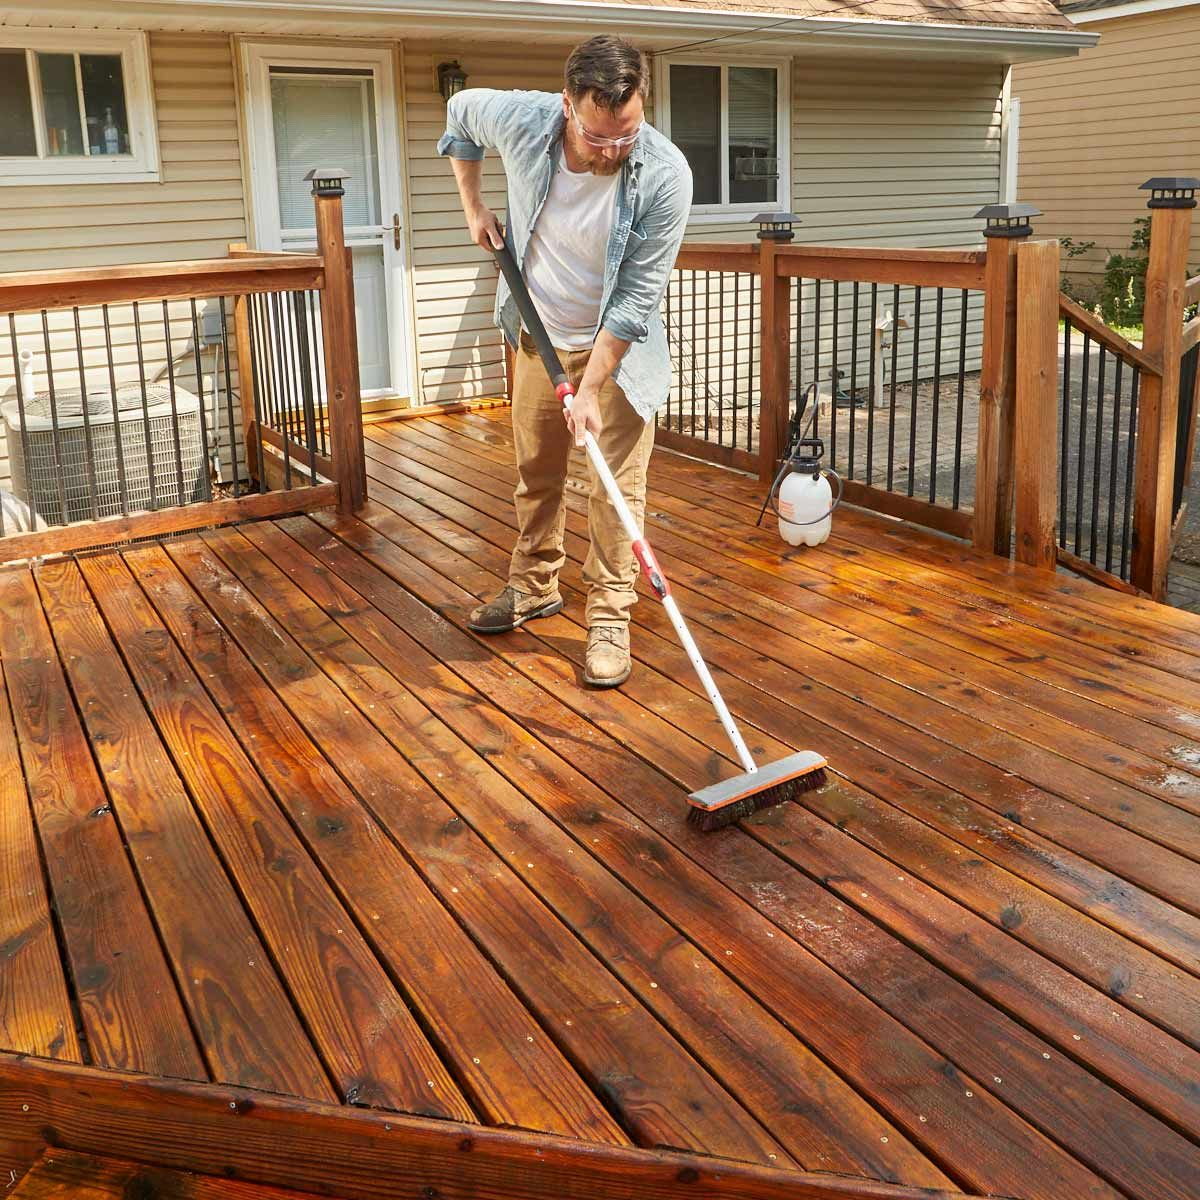 How to refinish a deck with acrylicbased deck stain